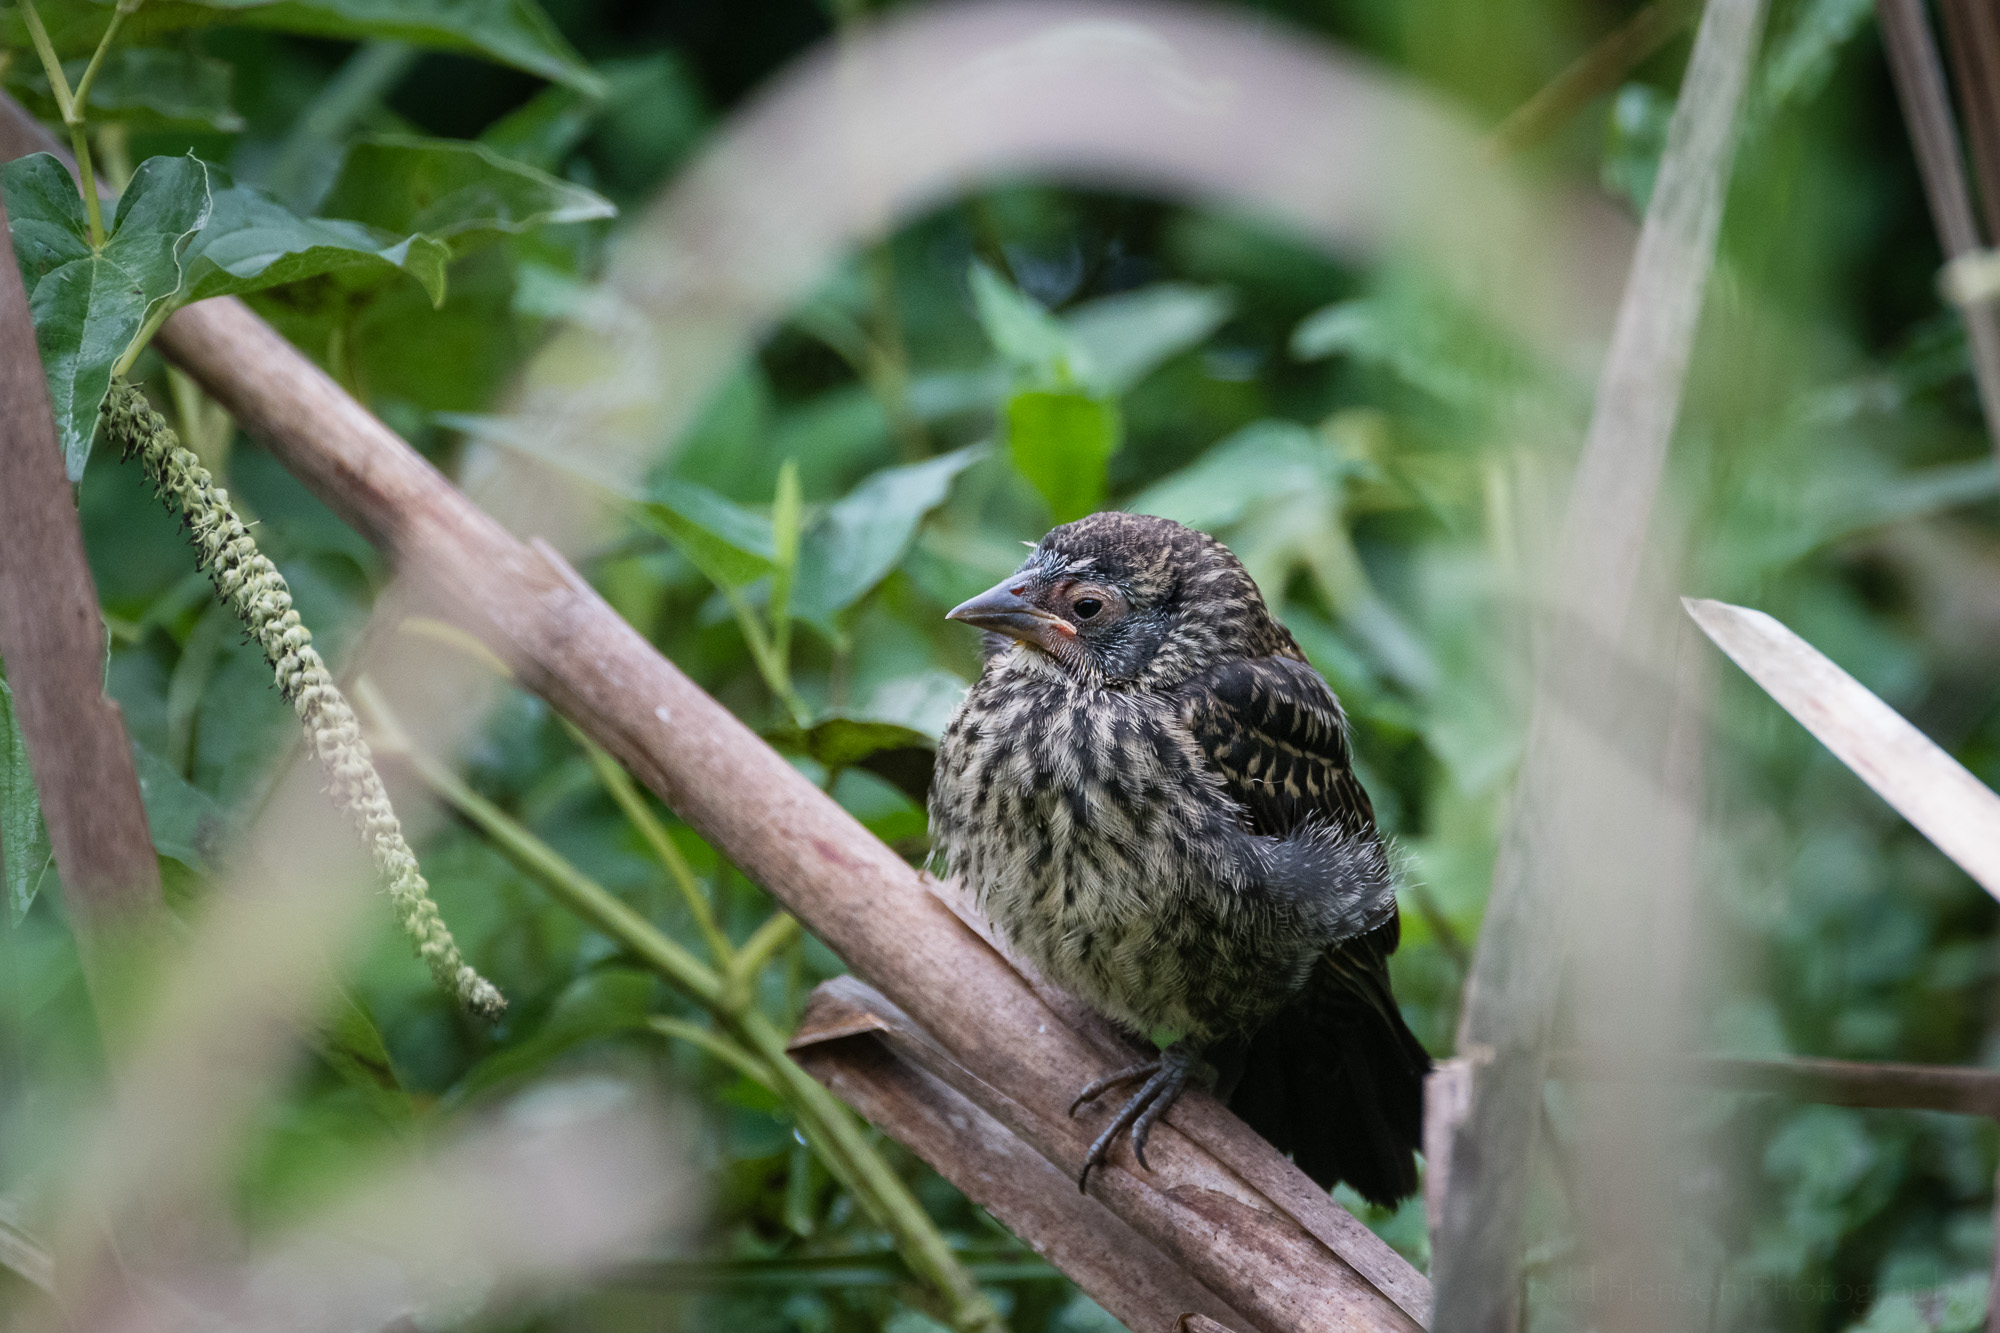 Parting image of the young fledged Red-winged Blackbird.